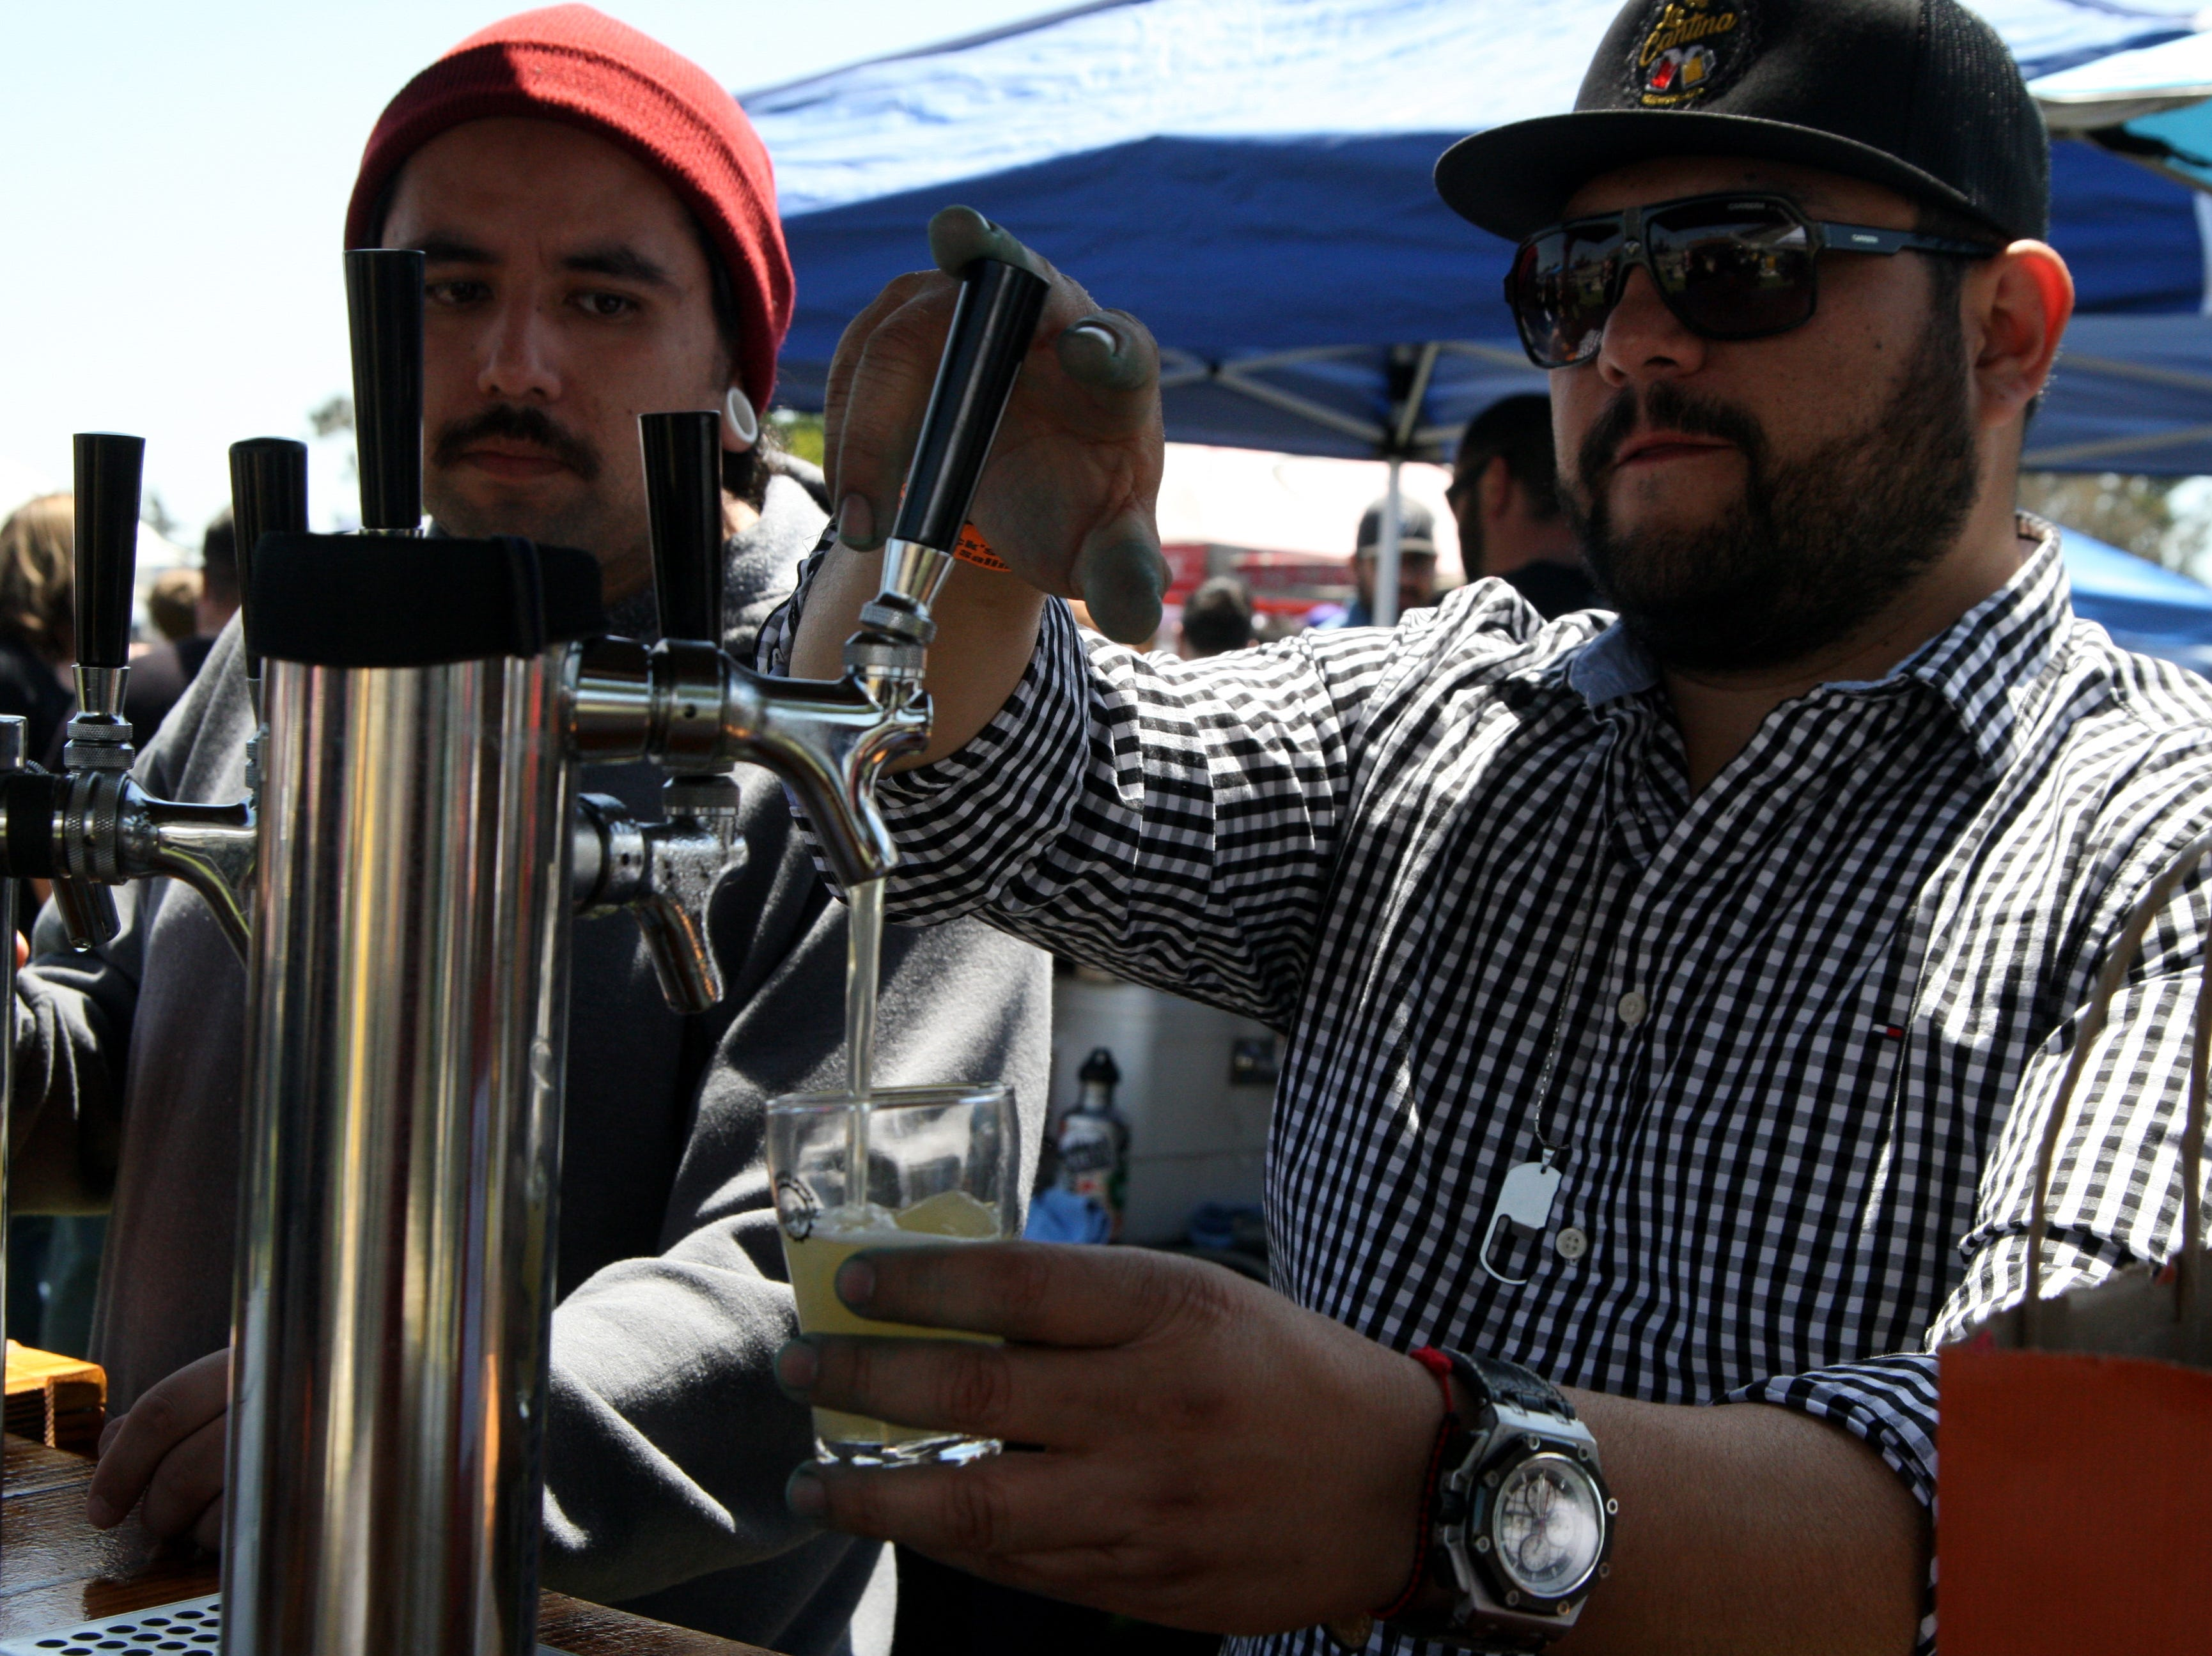 A home brewer pulls a beer at the Home Brew Fest. May 4, 2019.